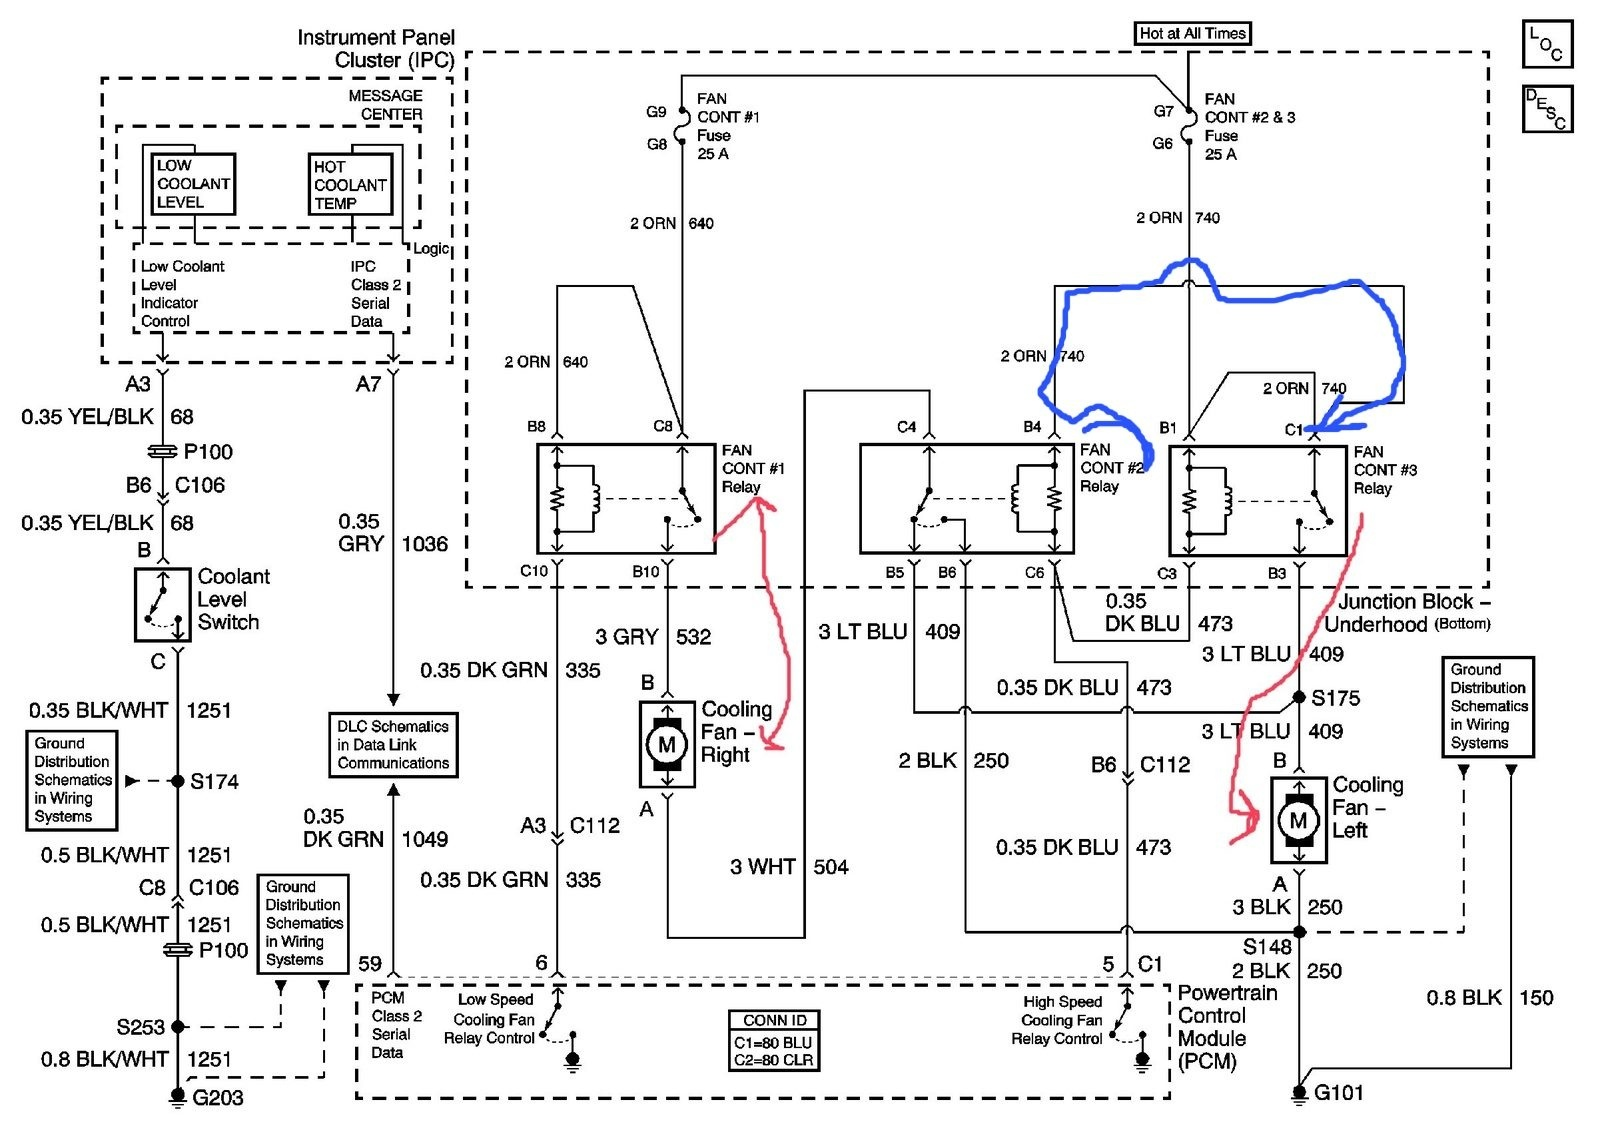 impala fuse box 1 fan wiring diagramchevrolet impala questions location of cooling fan relay carguruslocation of cooling fan relay